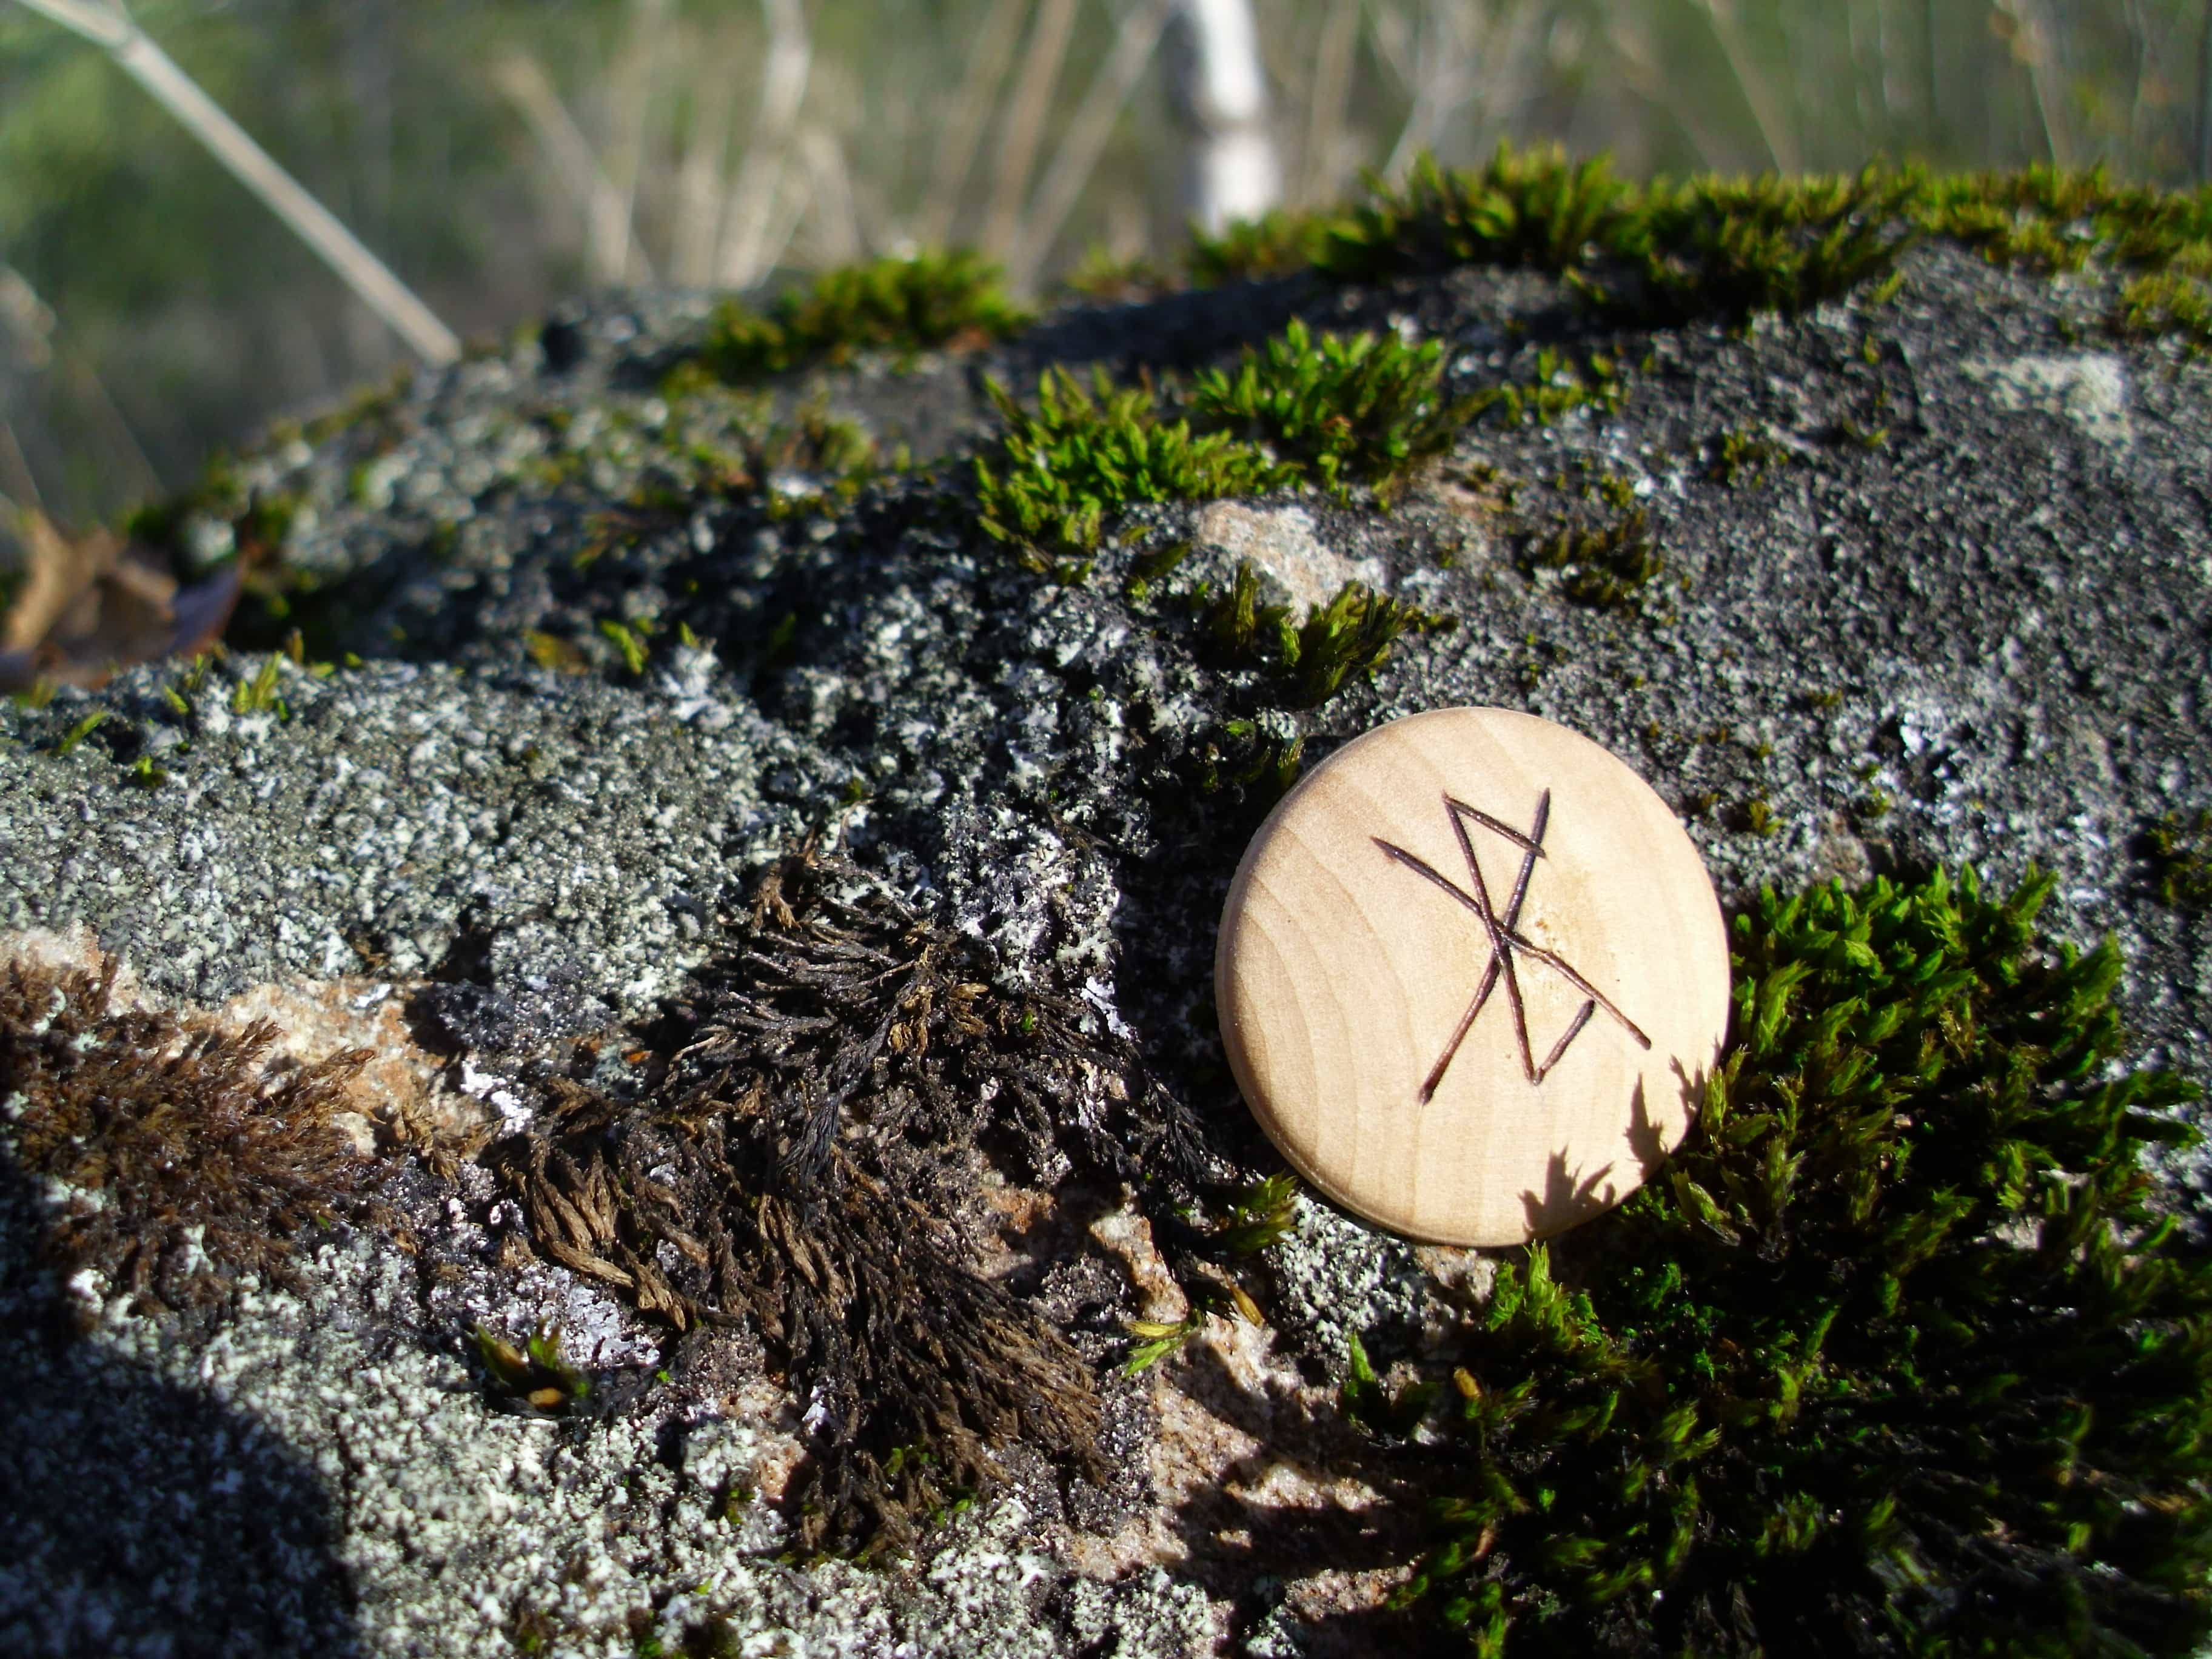 Pocket Rune for strengthening psychic abilities - Wooden Rune Amulet - Synske Evner